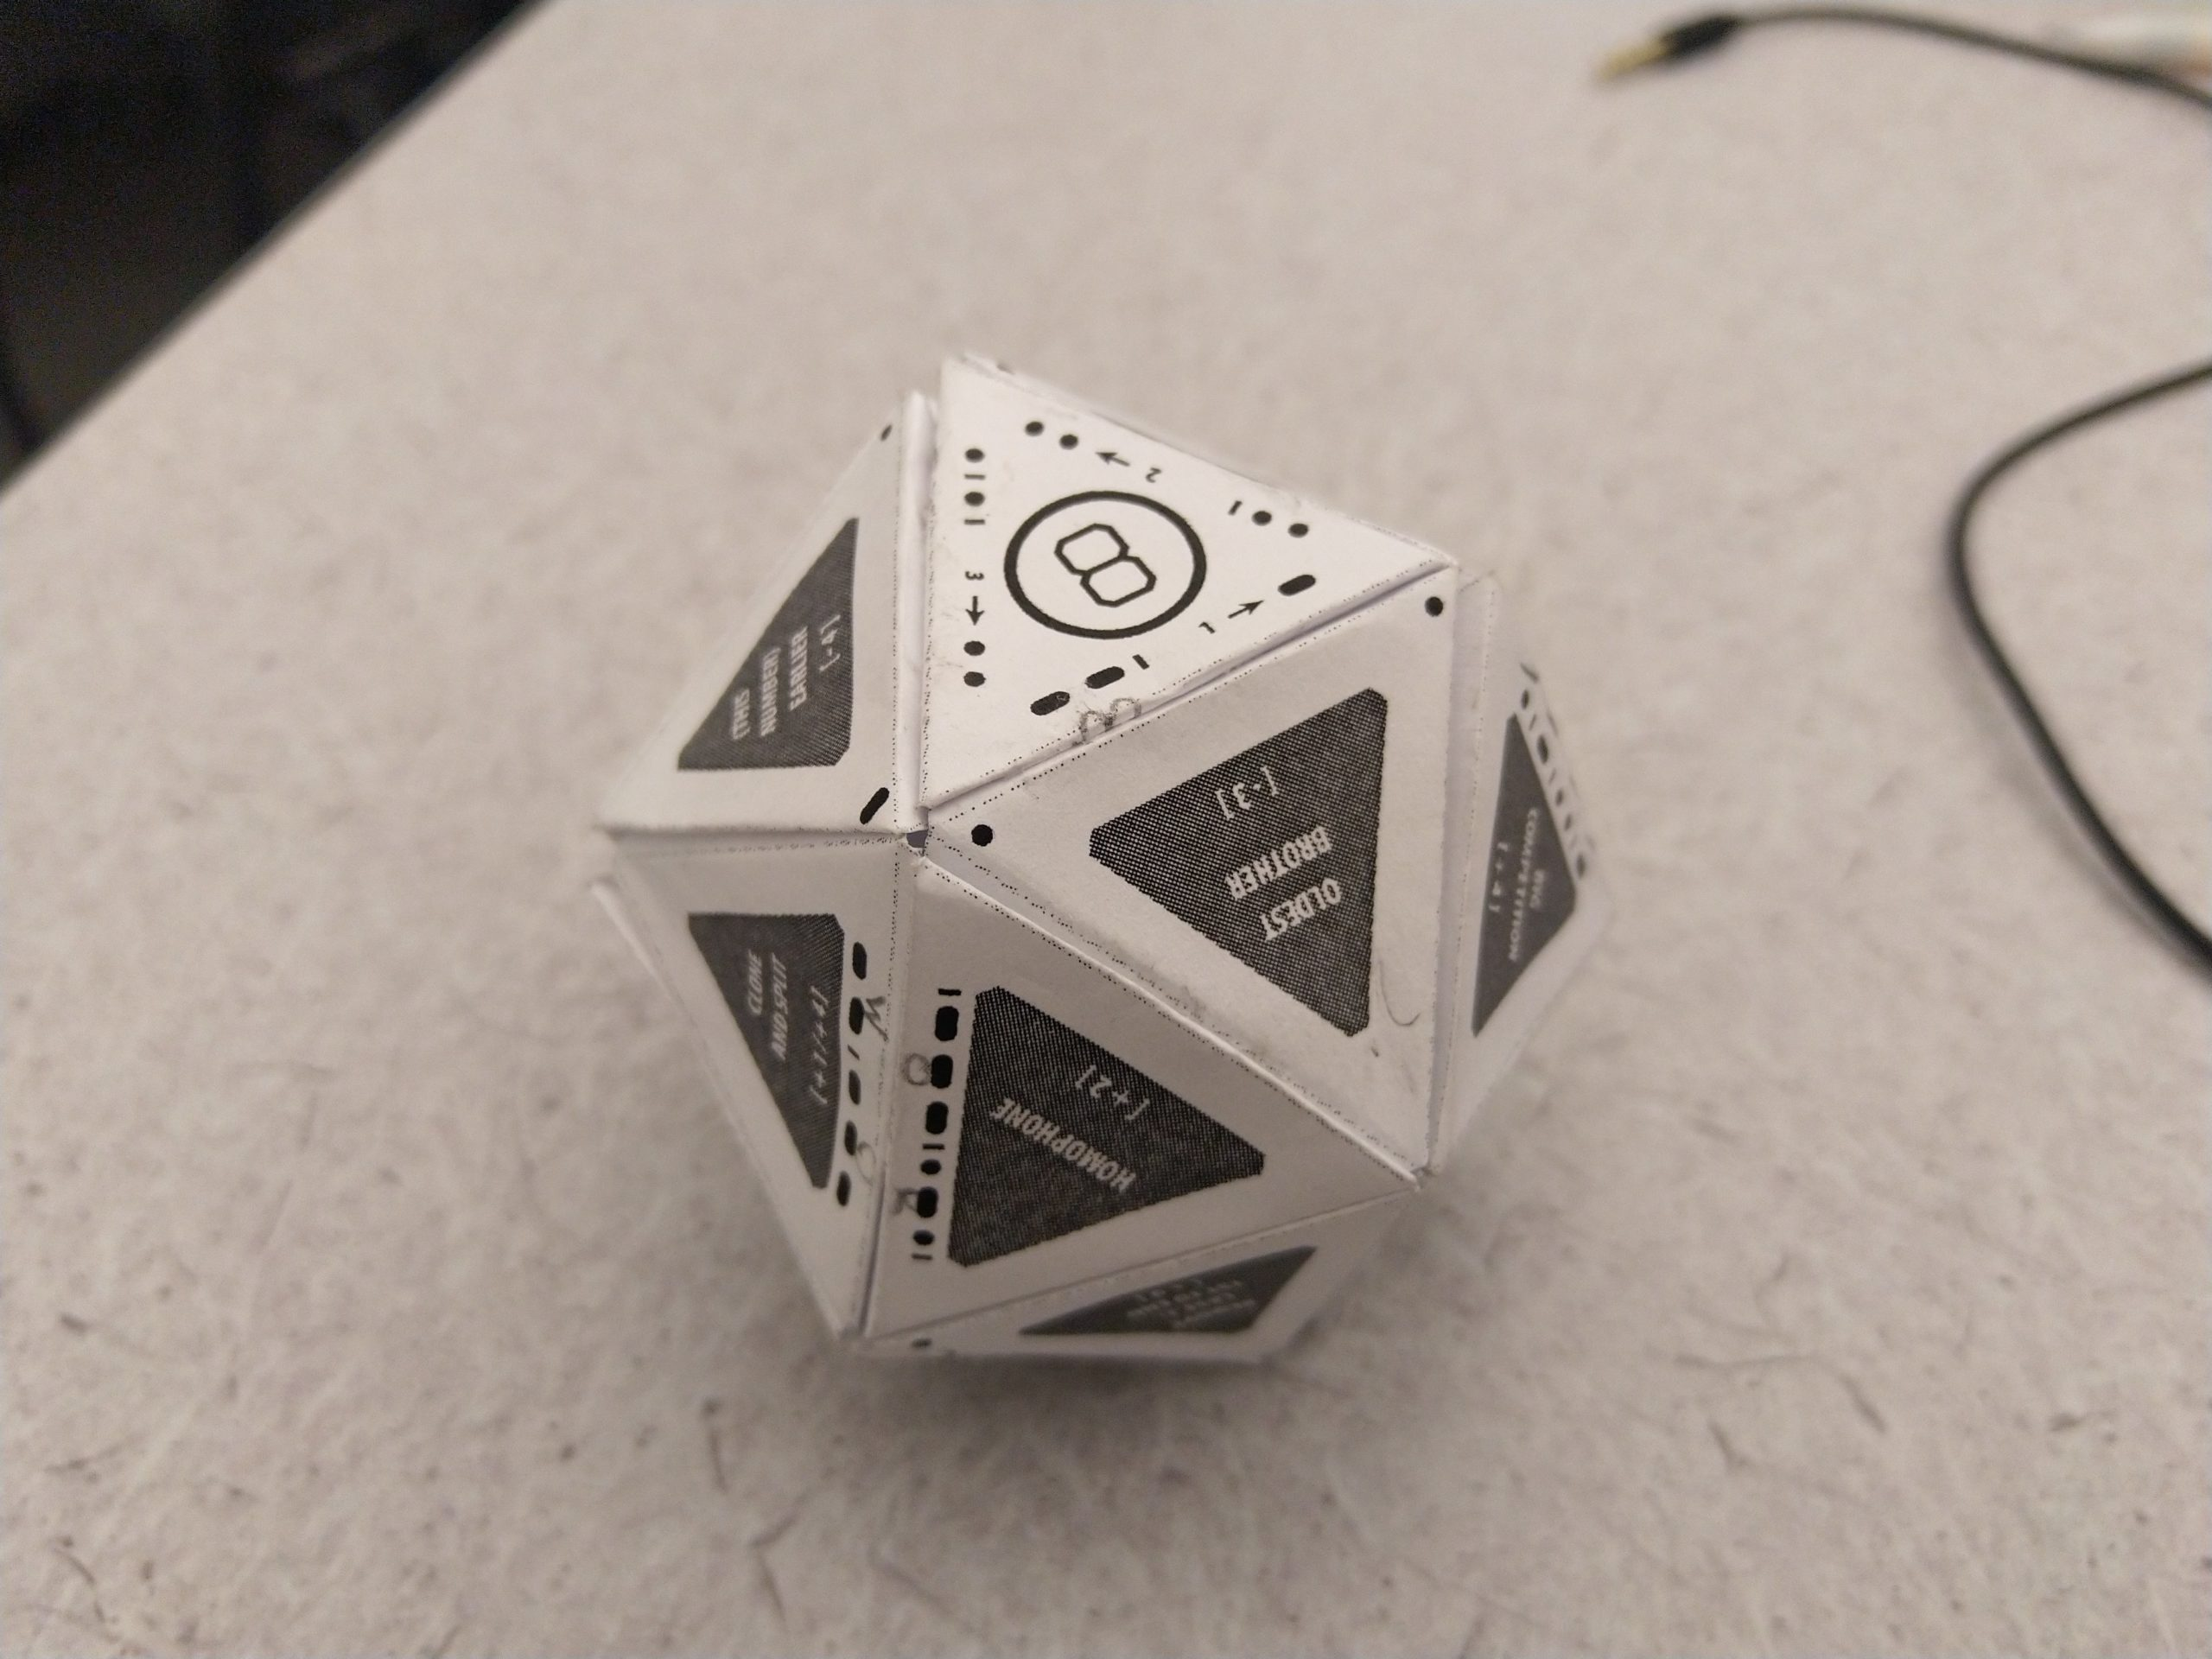 an assembled icosahedron from paper on a table